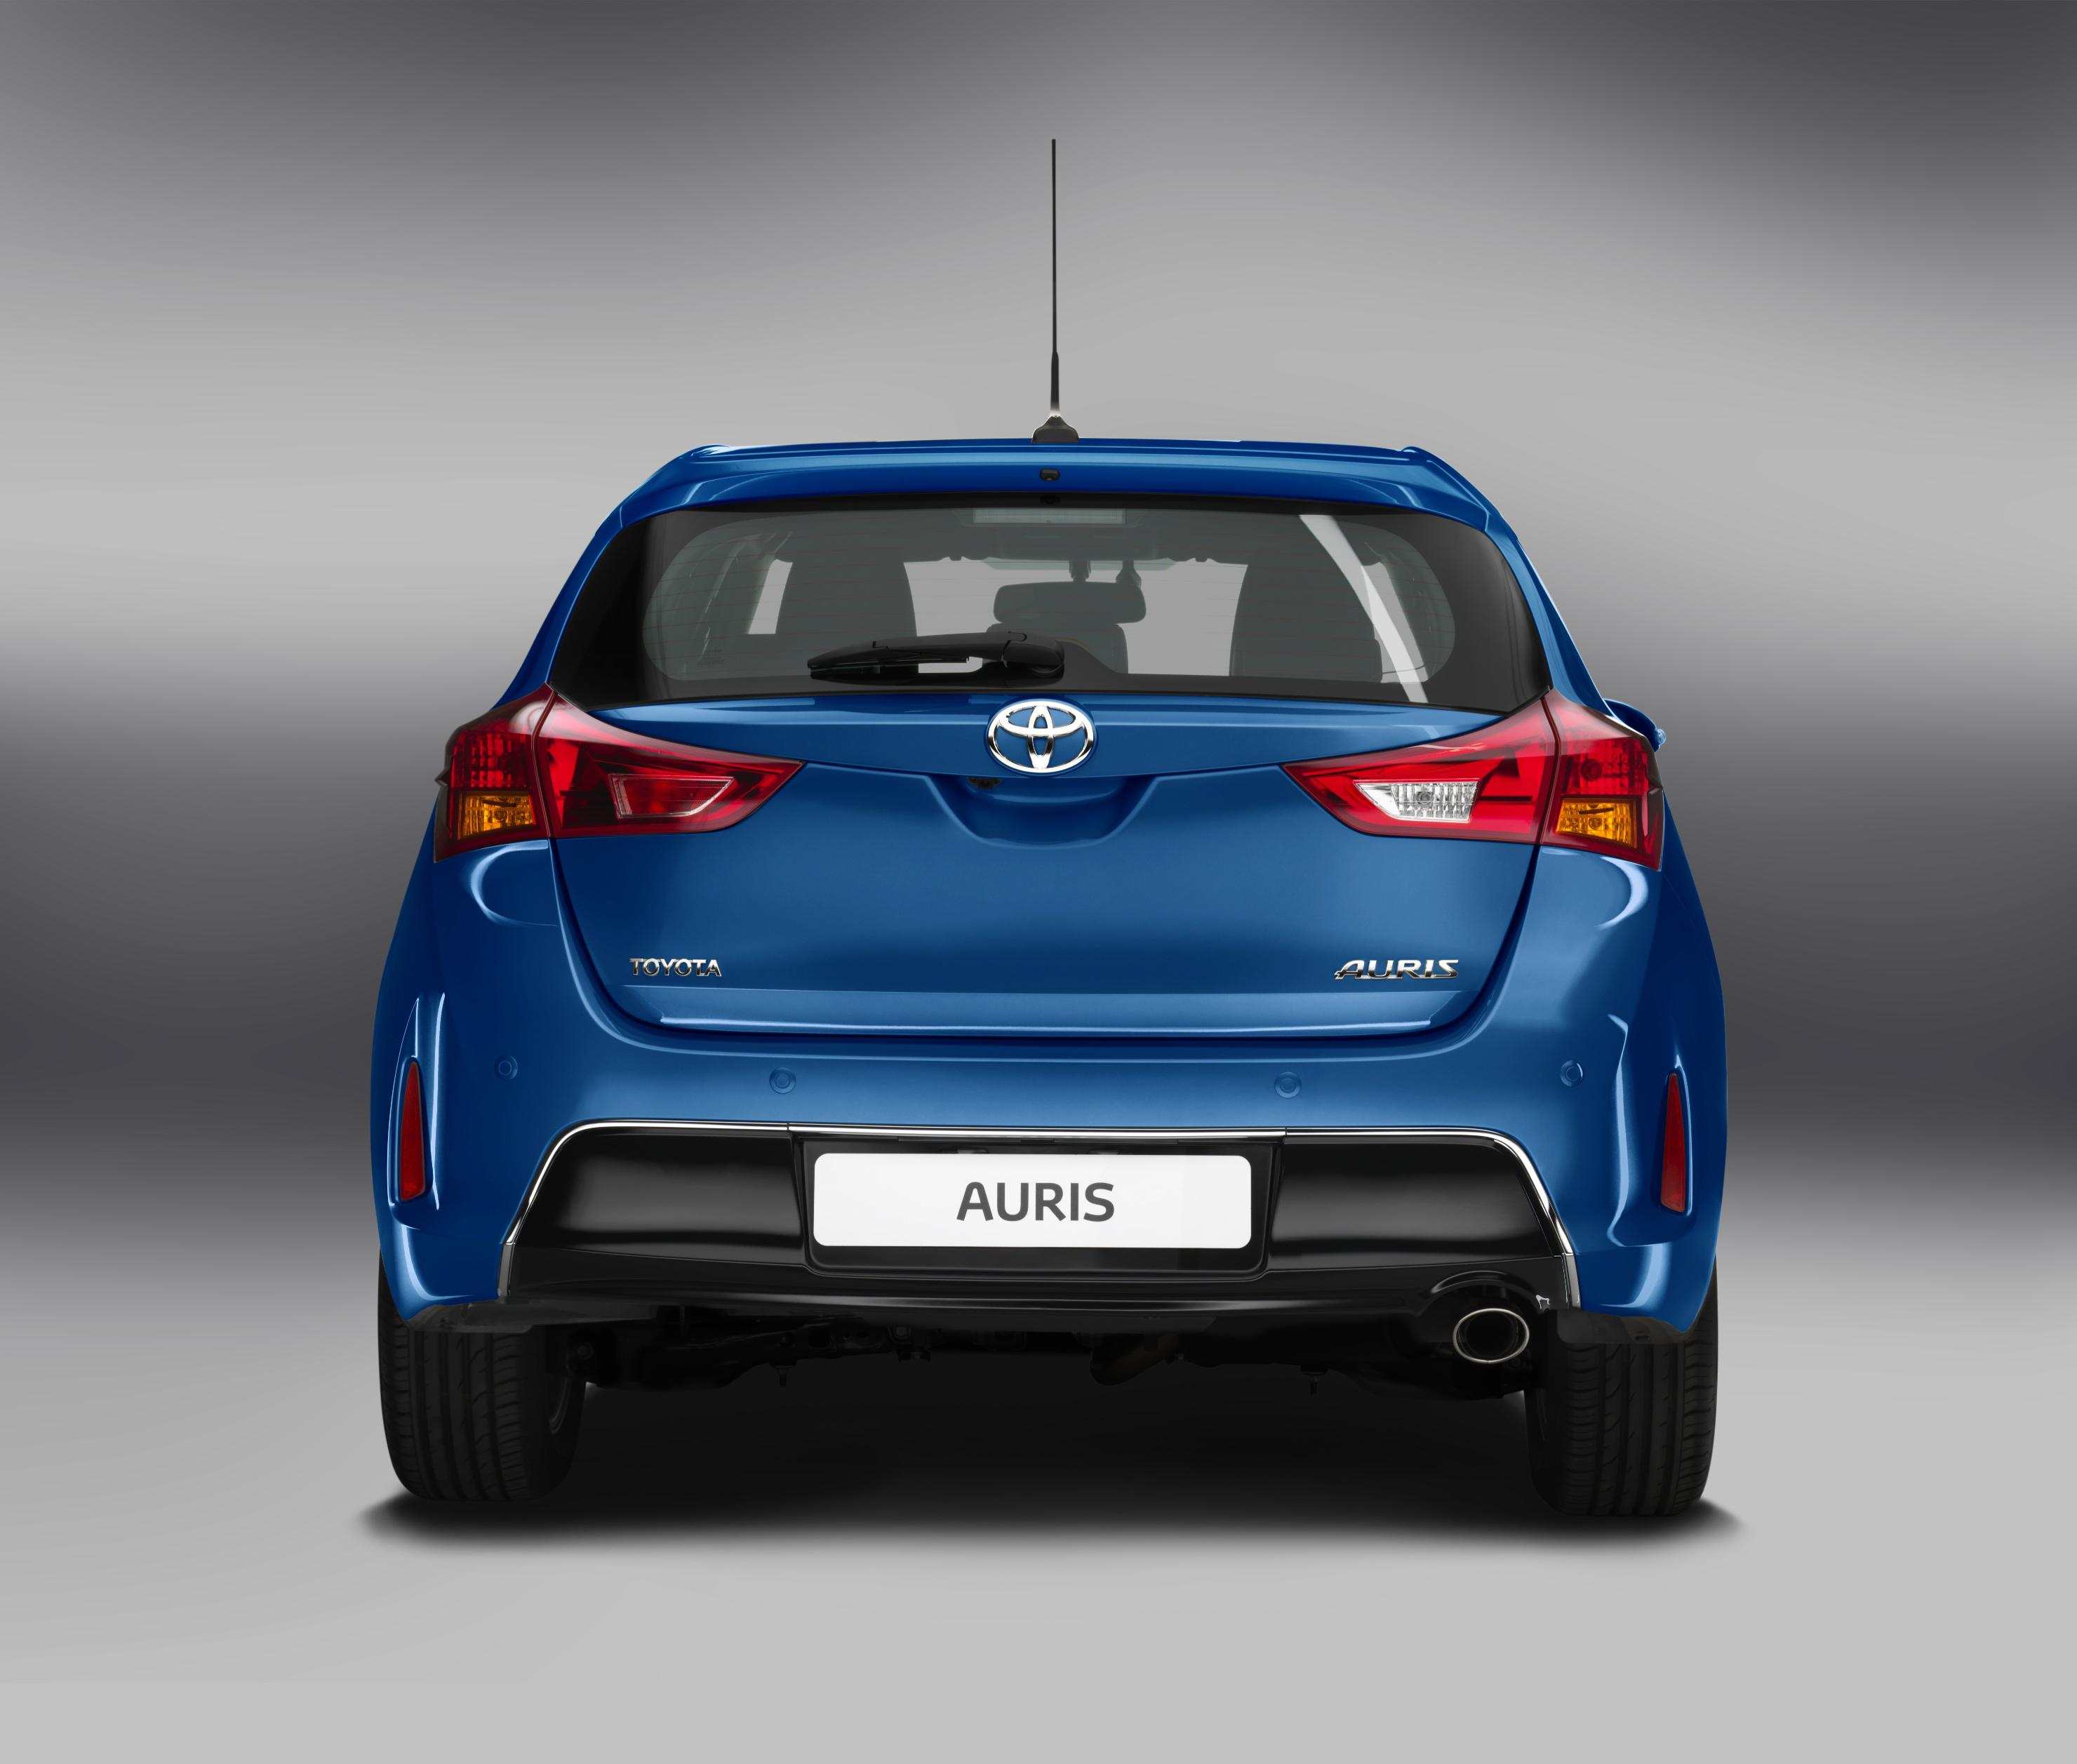 2013 Toyota Auris Hybrid - Picture 72659